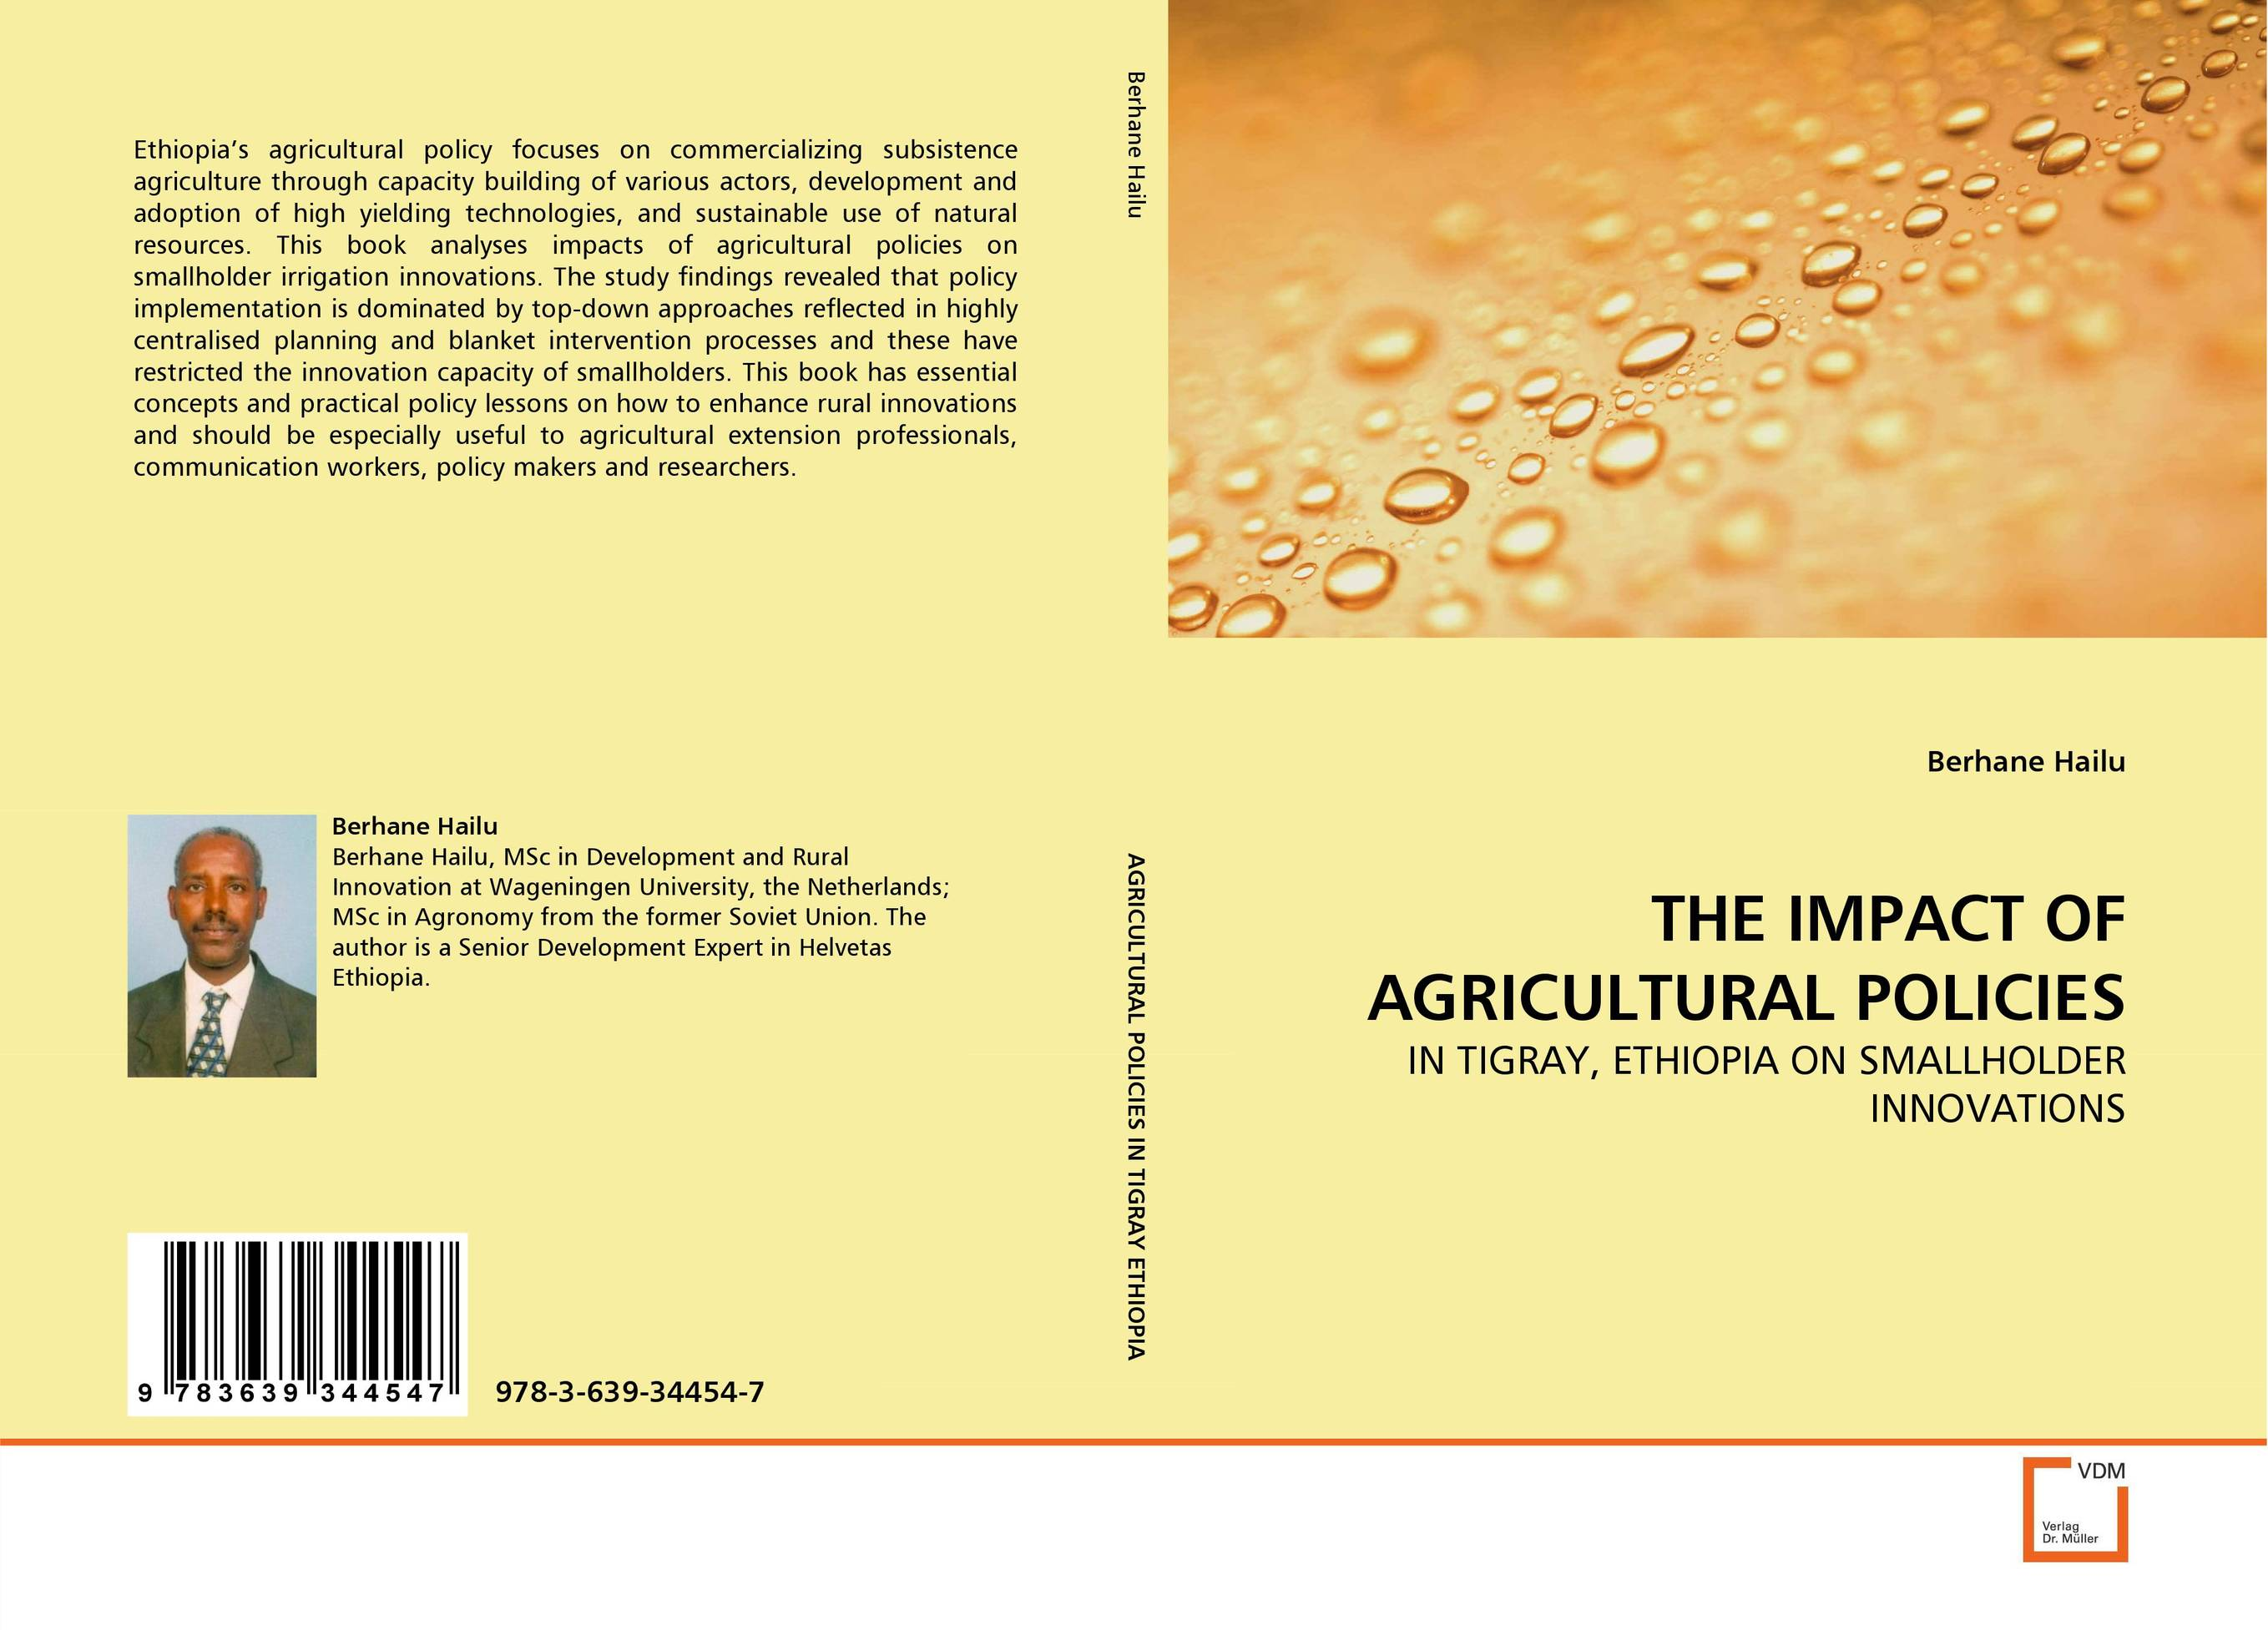 THE IMPACT OF AGRICULTURAL POLICIES cold storage accessibility and agricultural production by smallholders